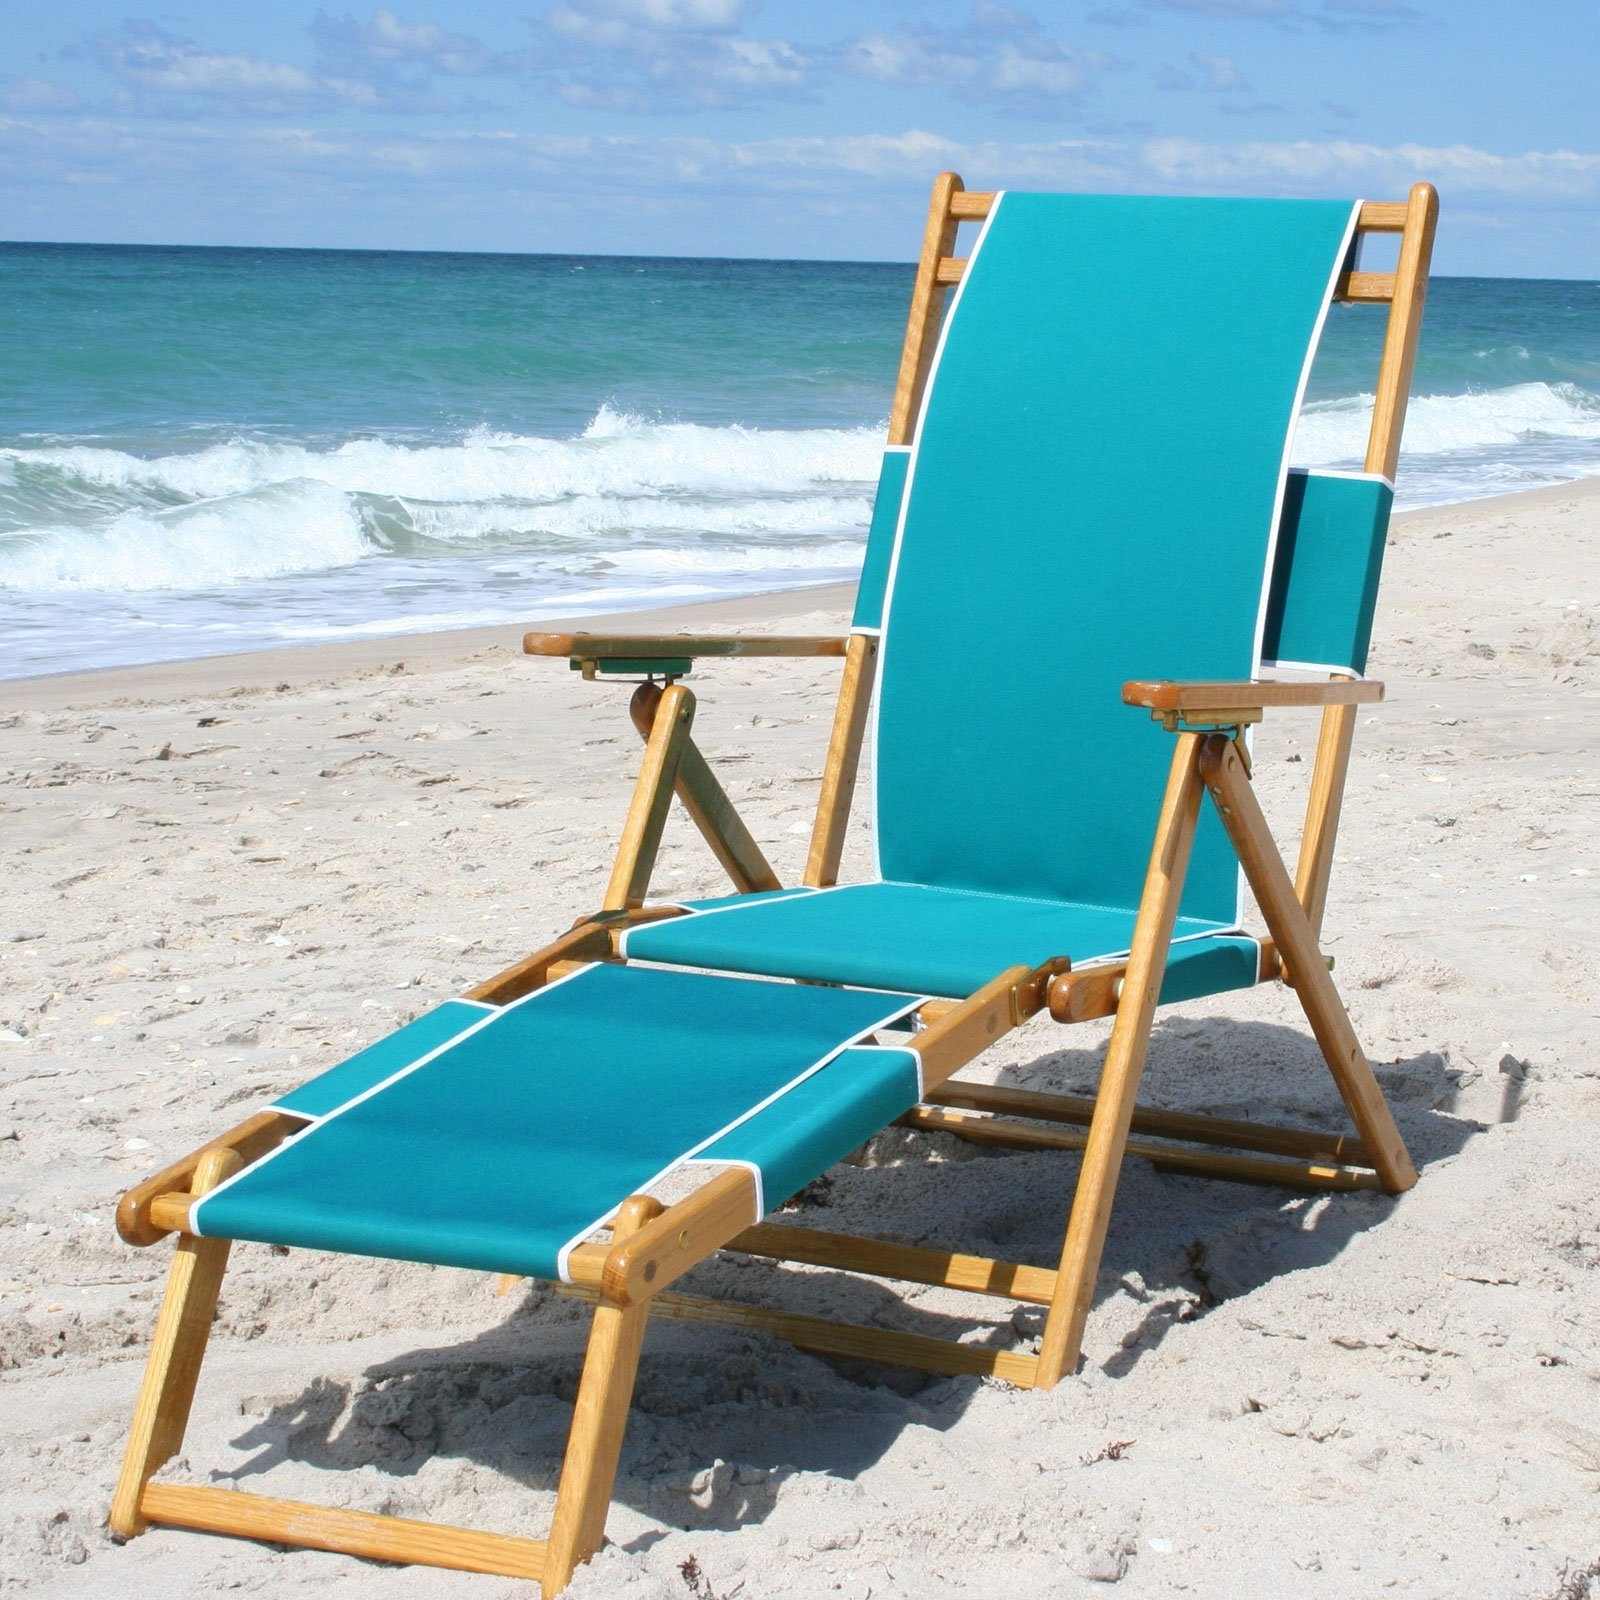 Picture 21 Of 39 – Chaise Lounge Beach Chair Luxury Stylish Beach Pertaining To Recent Ostrich Chaise Lounge Chairs (View 12 of 15)